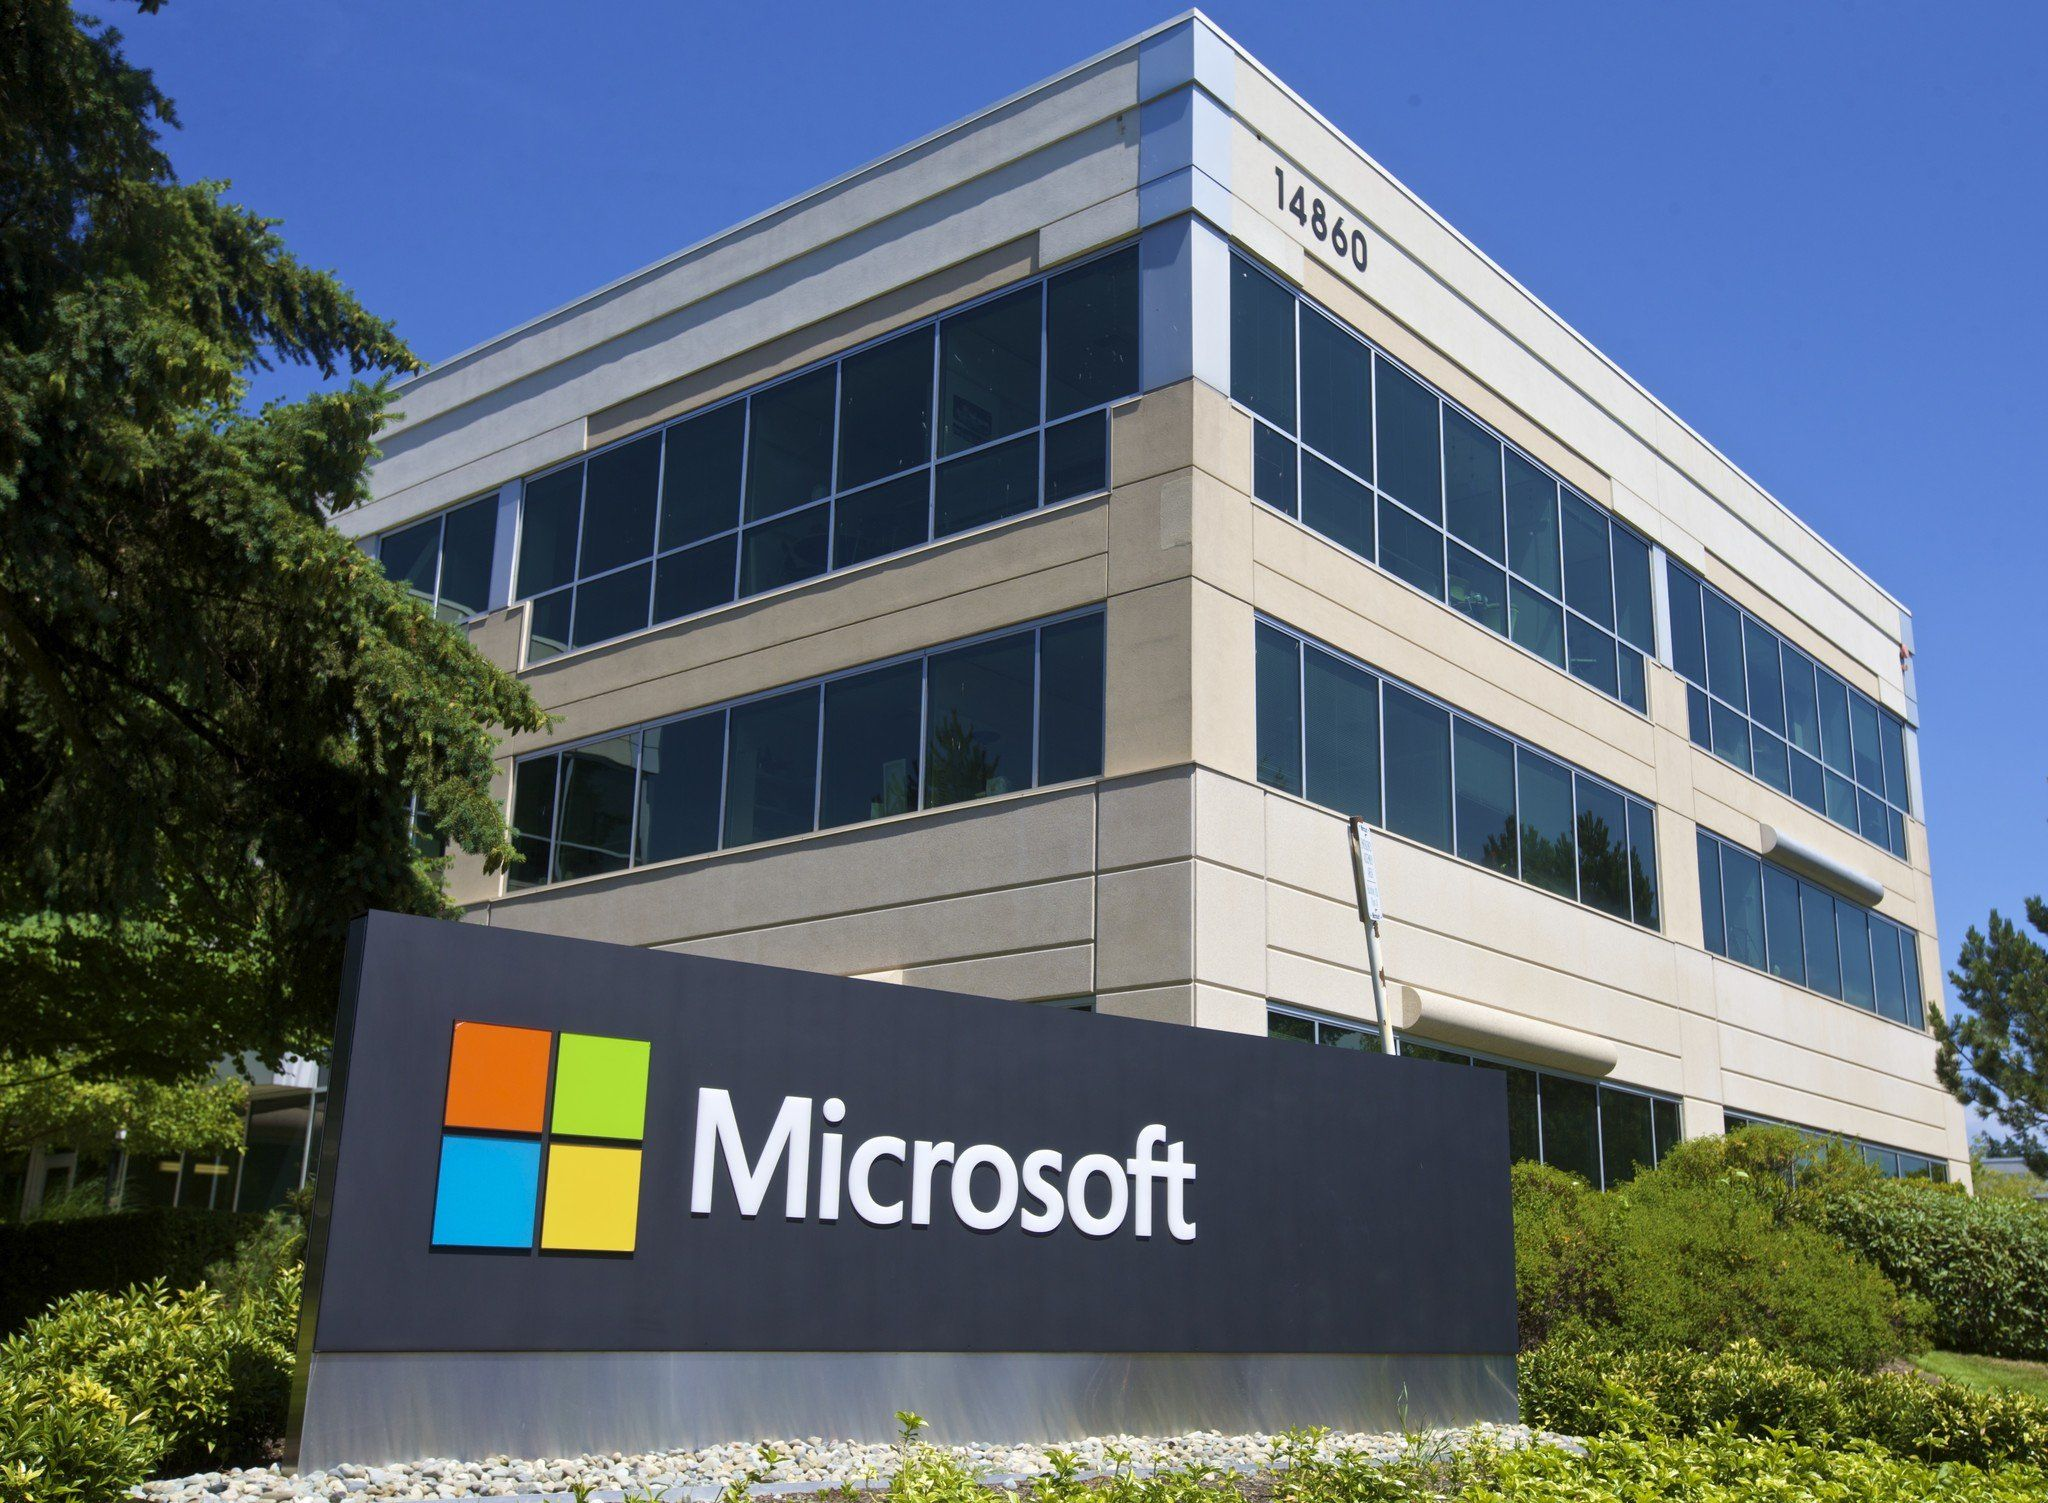 Following Kaspersky complaint, Microsoft outlines approach to antivirus coverage